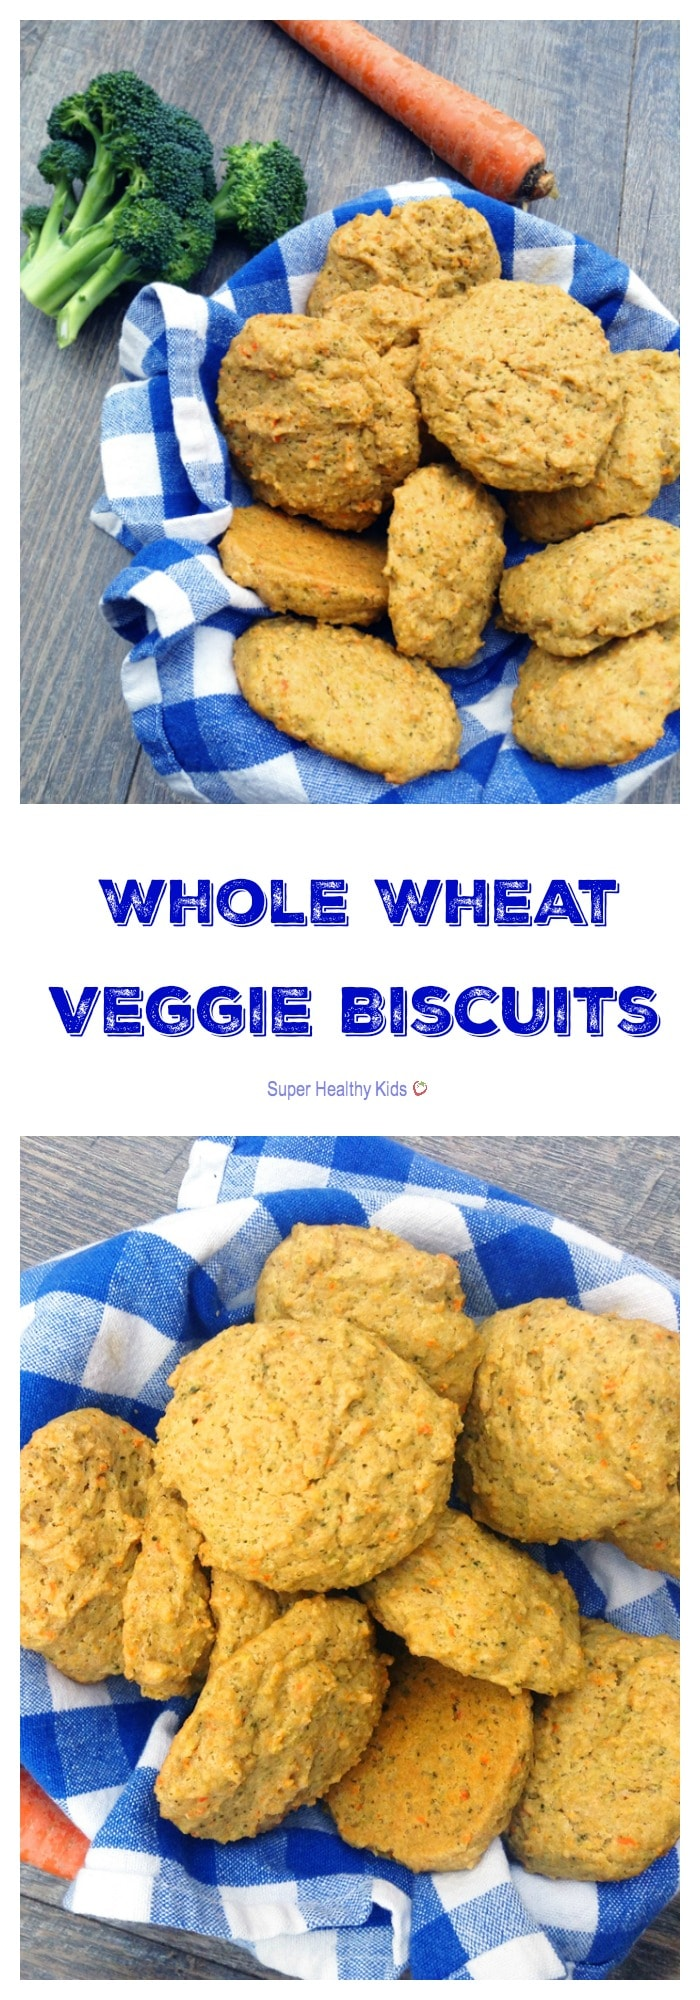 Whole Wheat Veggie Biscuits. Bust picky eating with these buttery whole wheat biscuits packed with broccoli and carrots! https://www.superhealthykids.com/broccoli-and-carrot-biscuits/